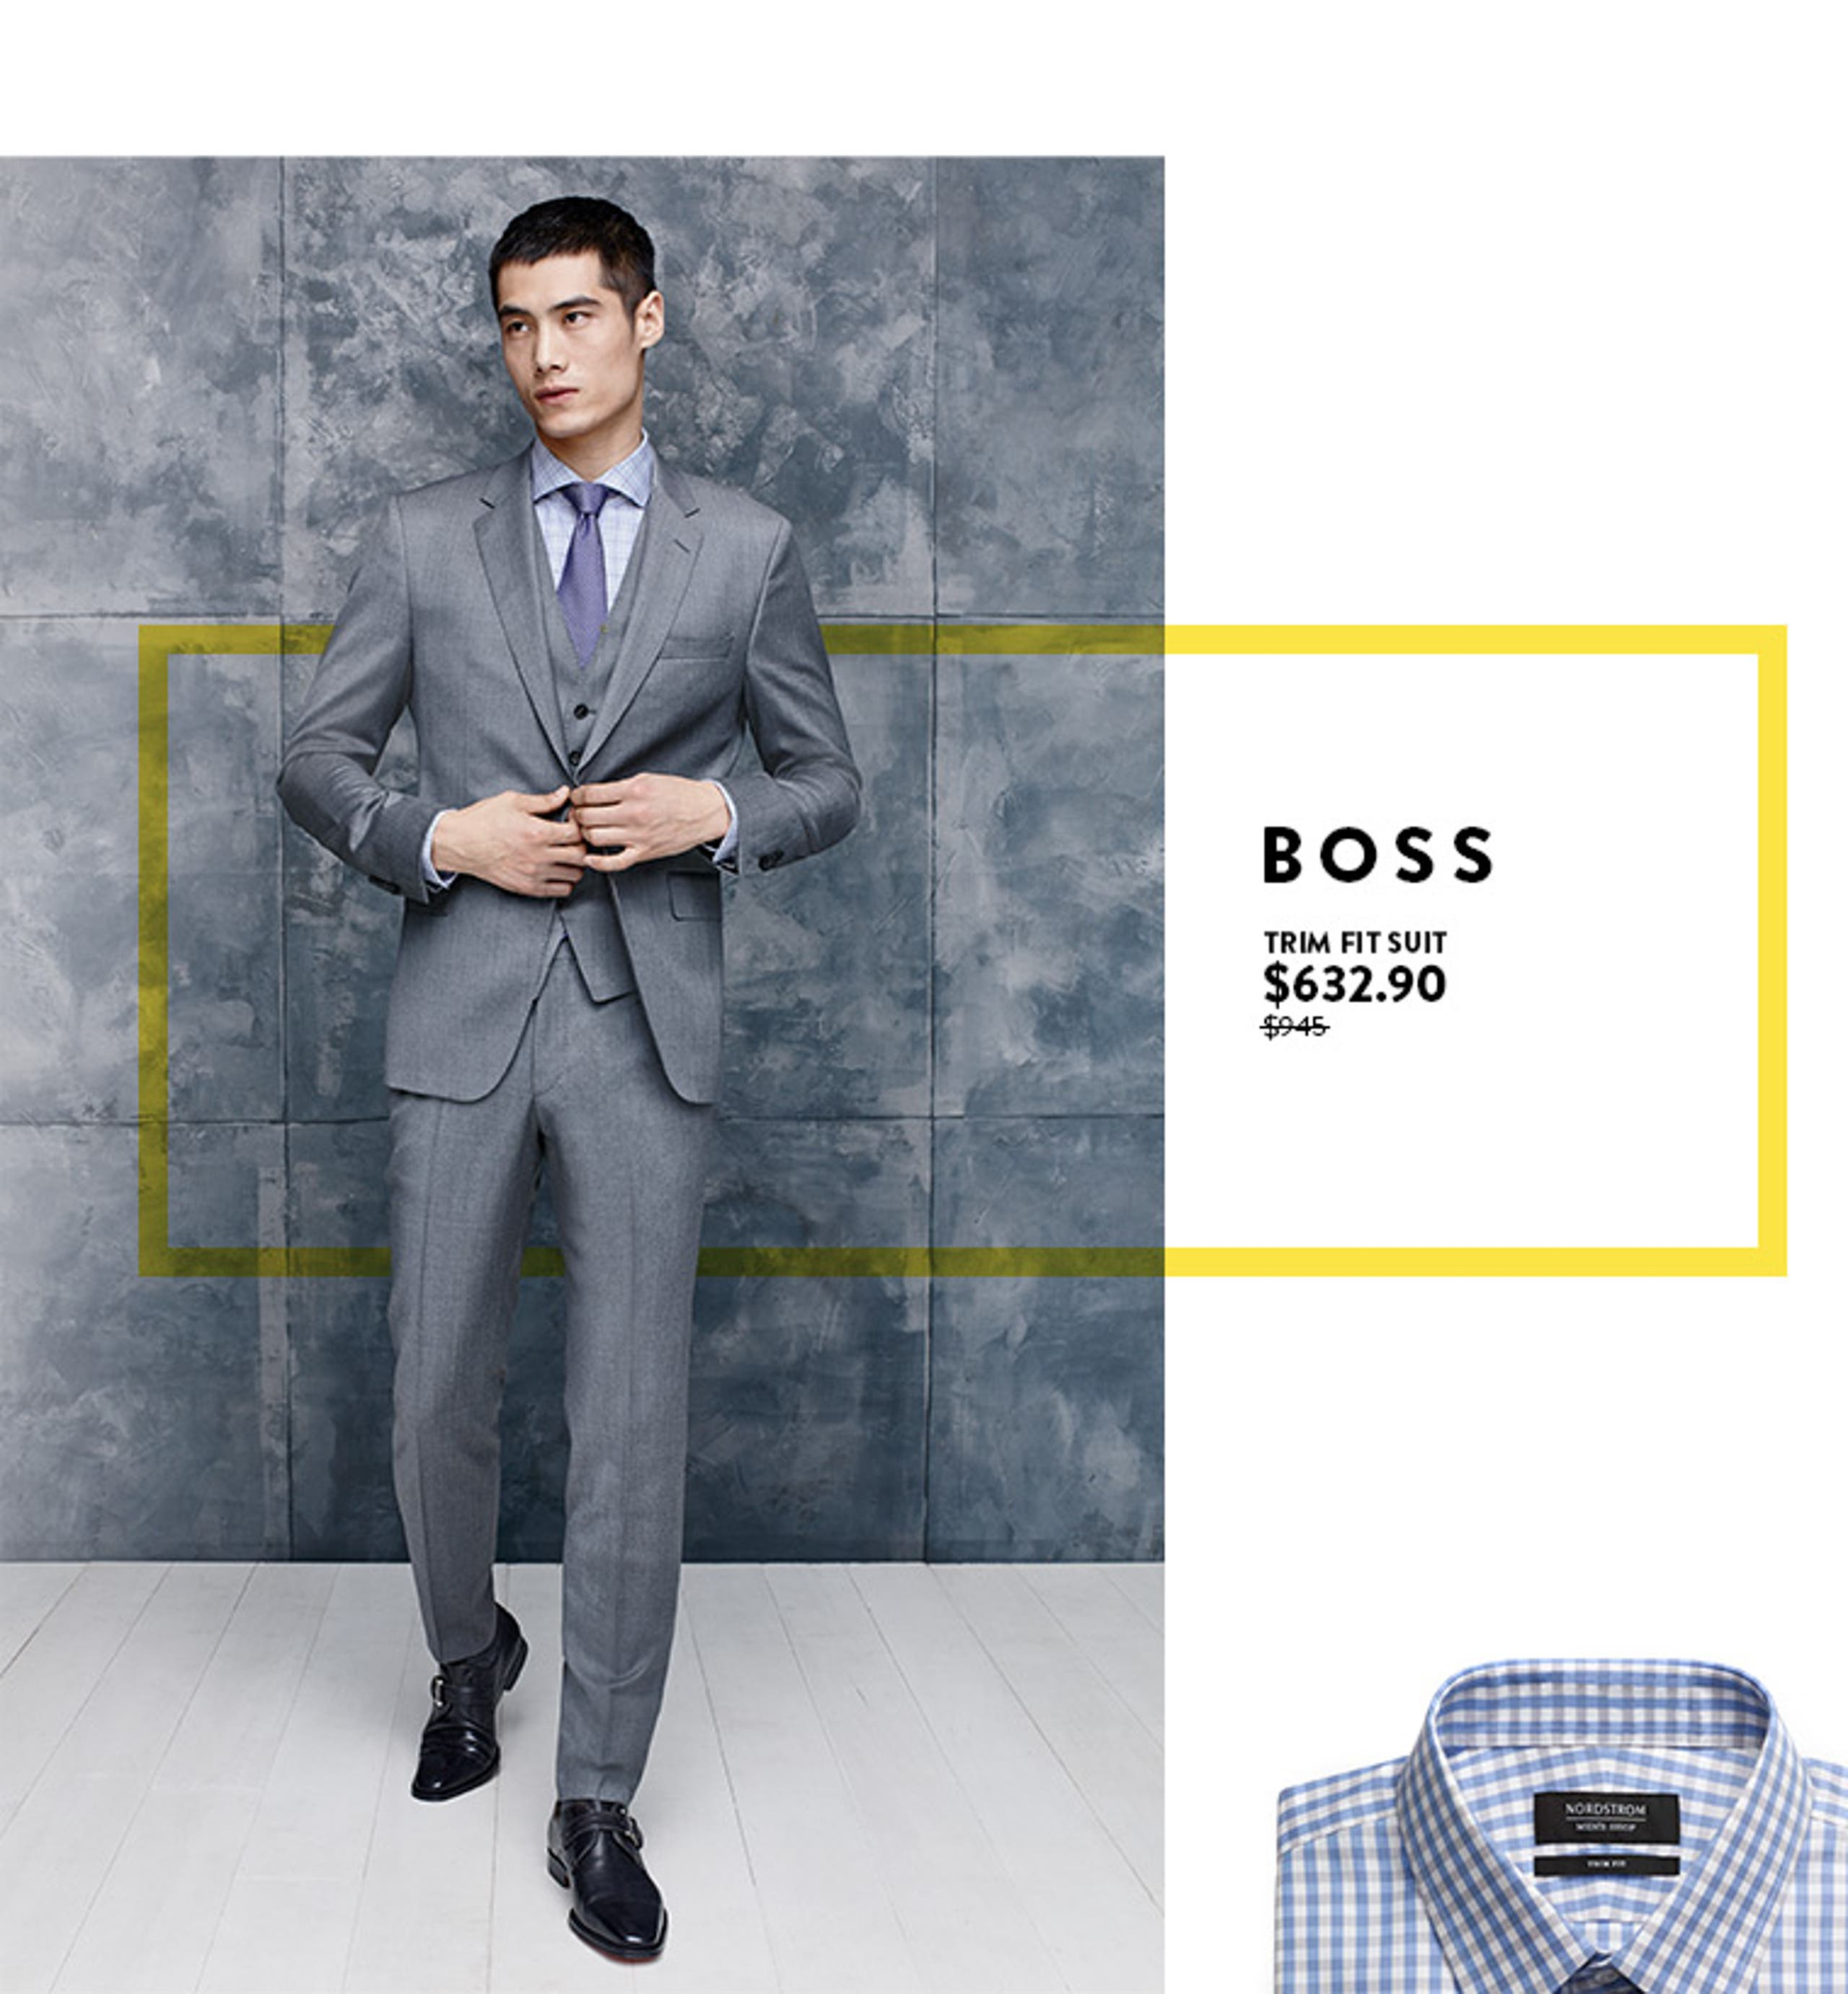 Anniversary Sale: Save on men's suits and sport coats from BOSS and more.